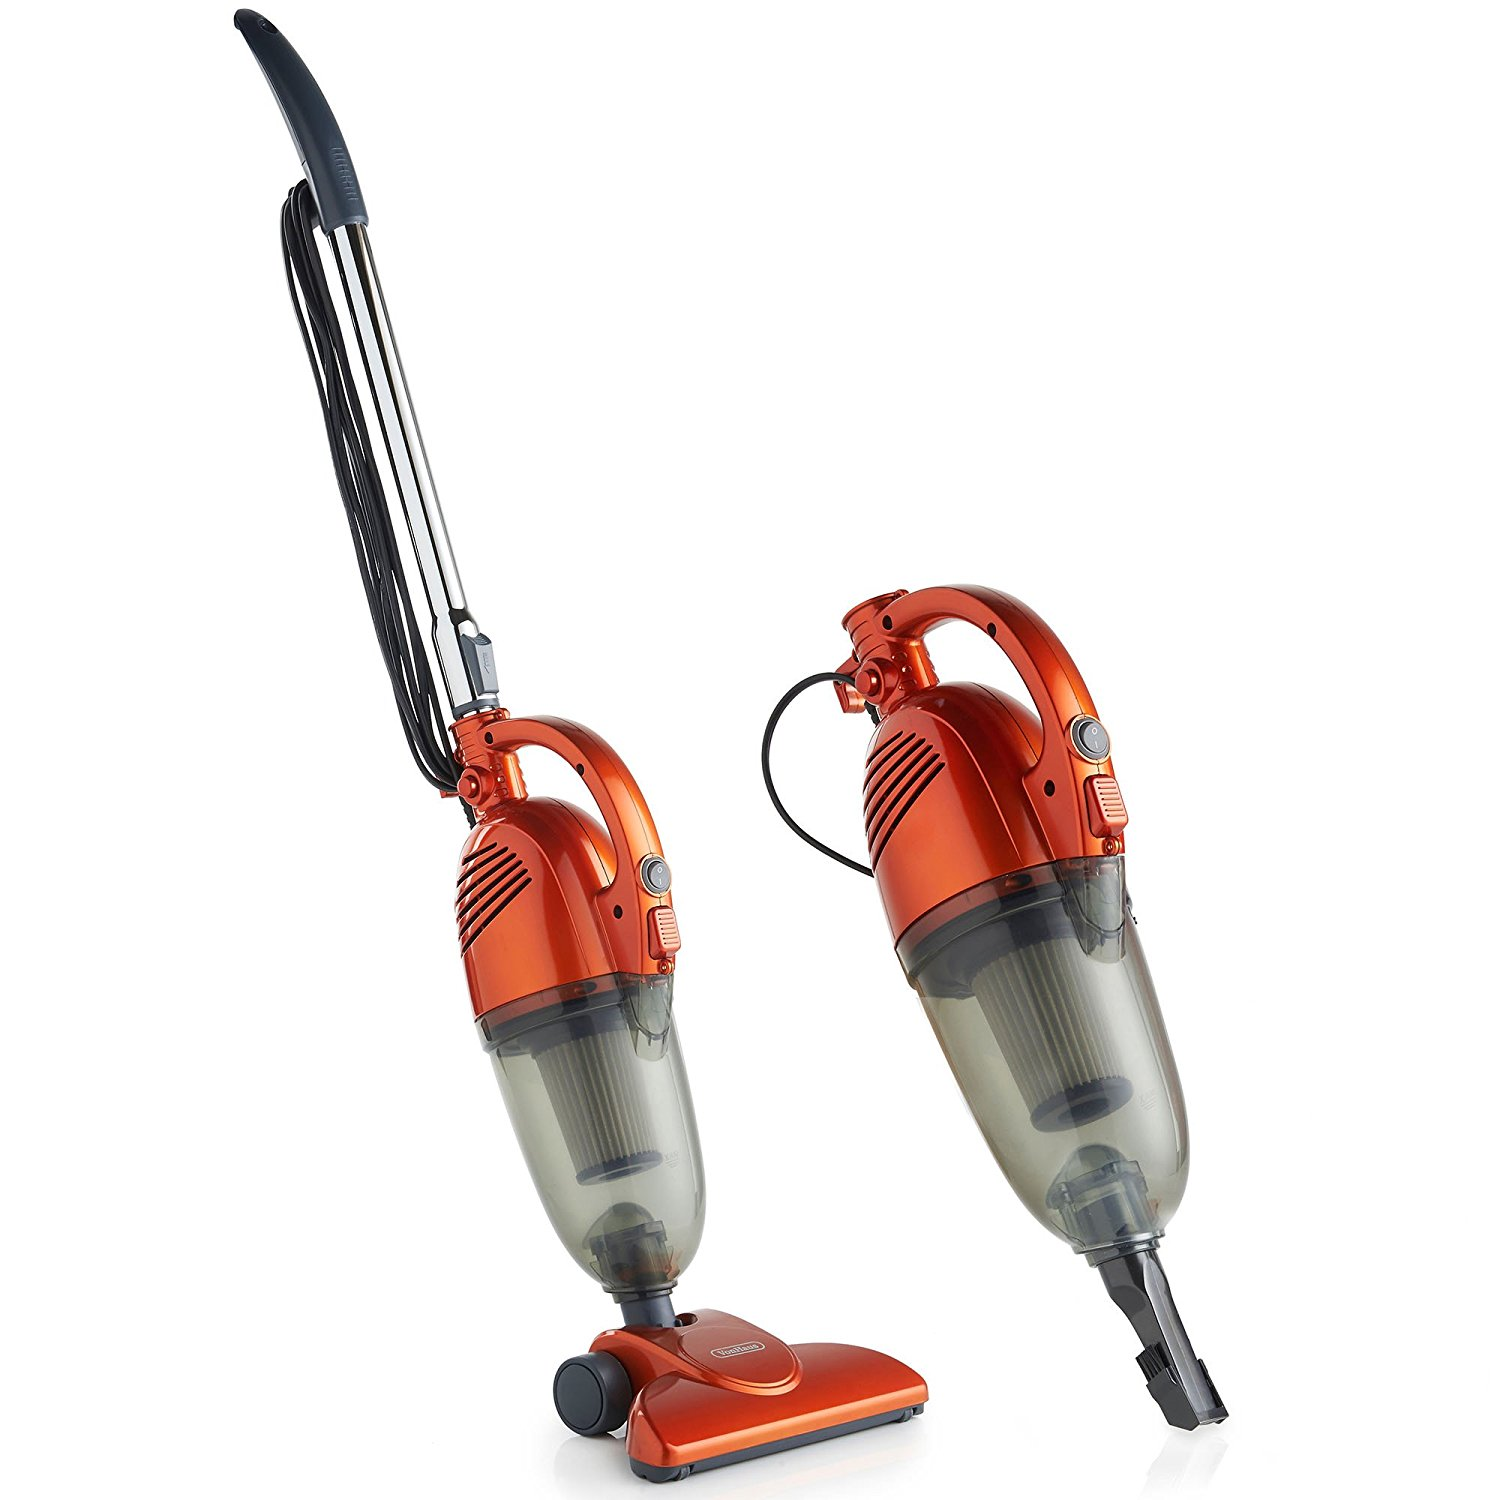 VonHaus 600W 2-in-1 Corded Upright Stick & Handheld Vacuum Cleaner with HEPA Filtration